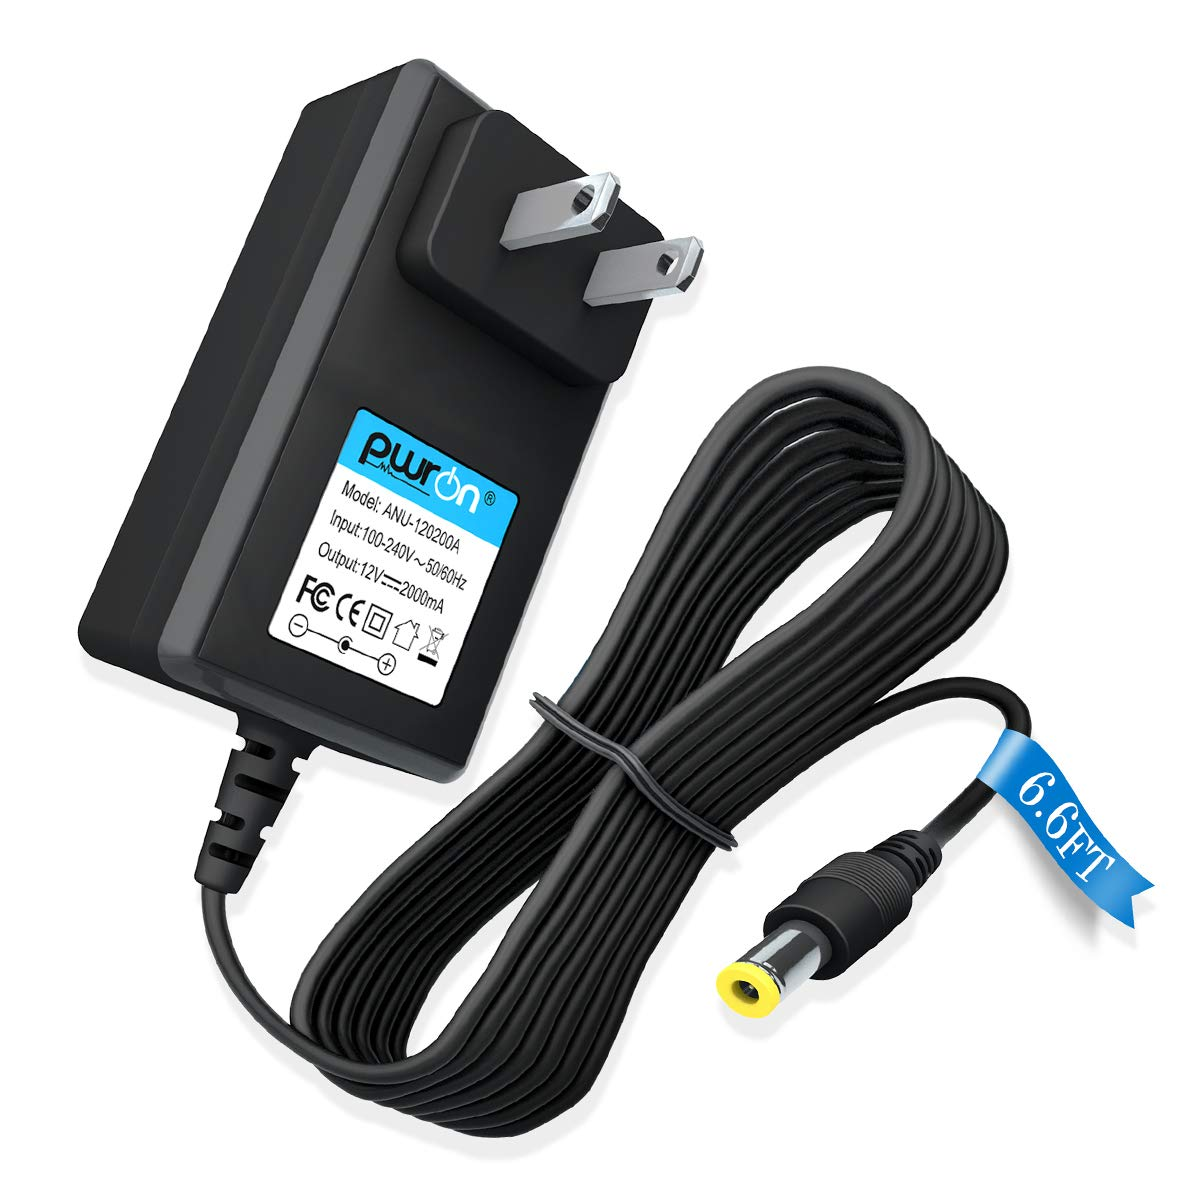 PwrON 12V AC Adapter Compatible with Sony BDP-BX BDP-S Series Blu-ray Disc DVD Player BDP-BX120 BDP-BX520 BDP-BX350 BDP-BX670 BDP-S1200 BDP-S1700 BDP-S3700 BDP-S3200 BDP-S6700, PN: AC-M1208UC